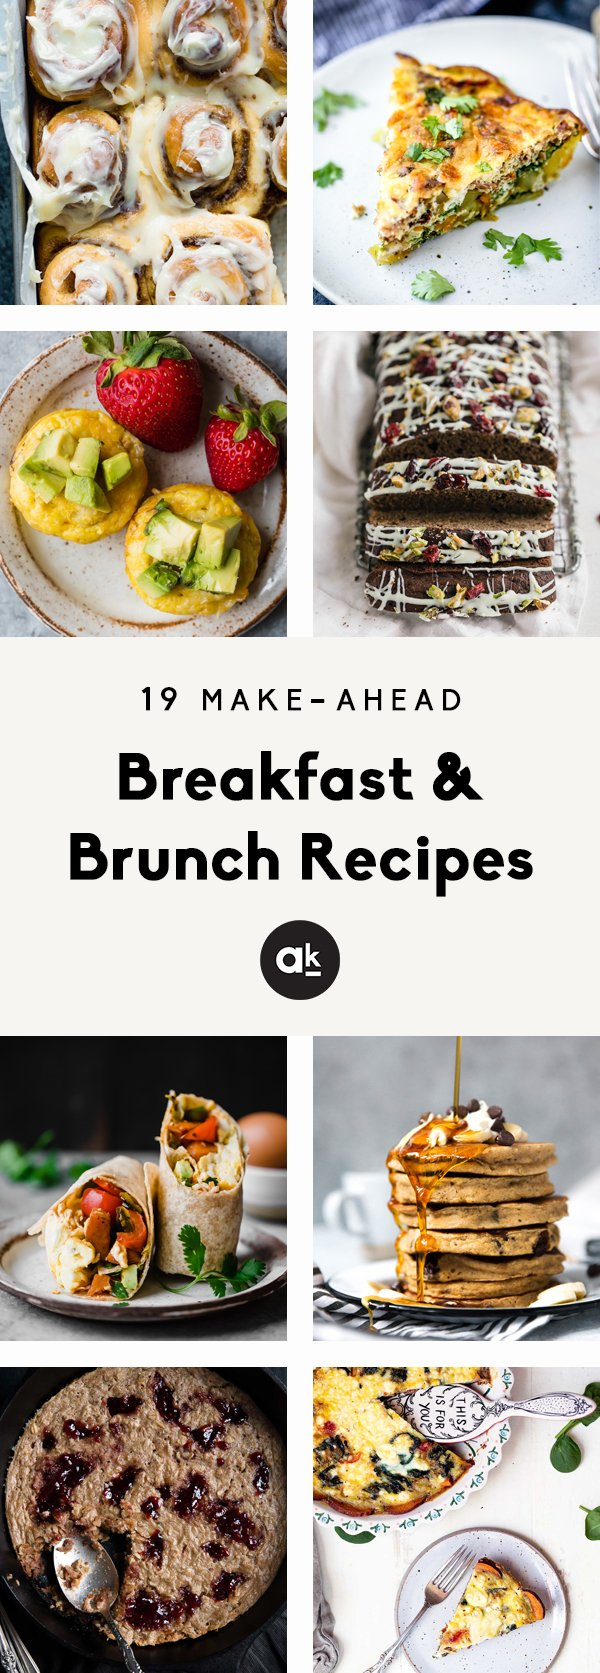 The best make-ahead breakfast recipes that are perfect for the holidays! From delicious muffins and breads to savory egg bakes, these easy holiday breakfast & brunch recipes are great for prepping the night before and enjoying the next morning.